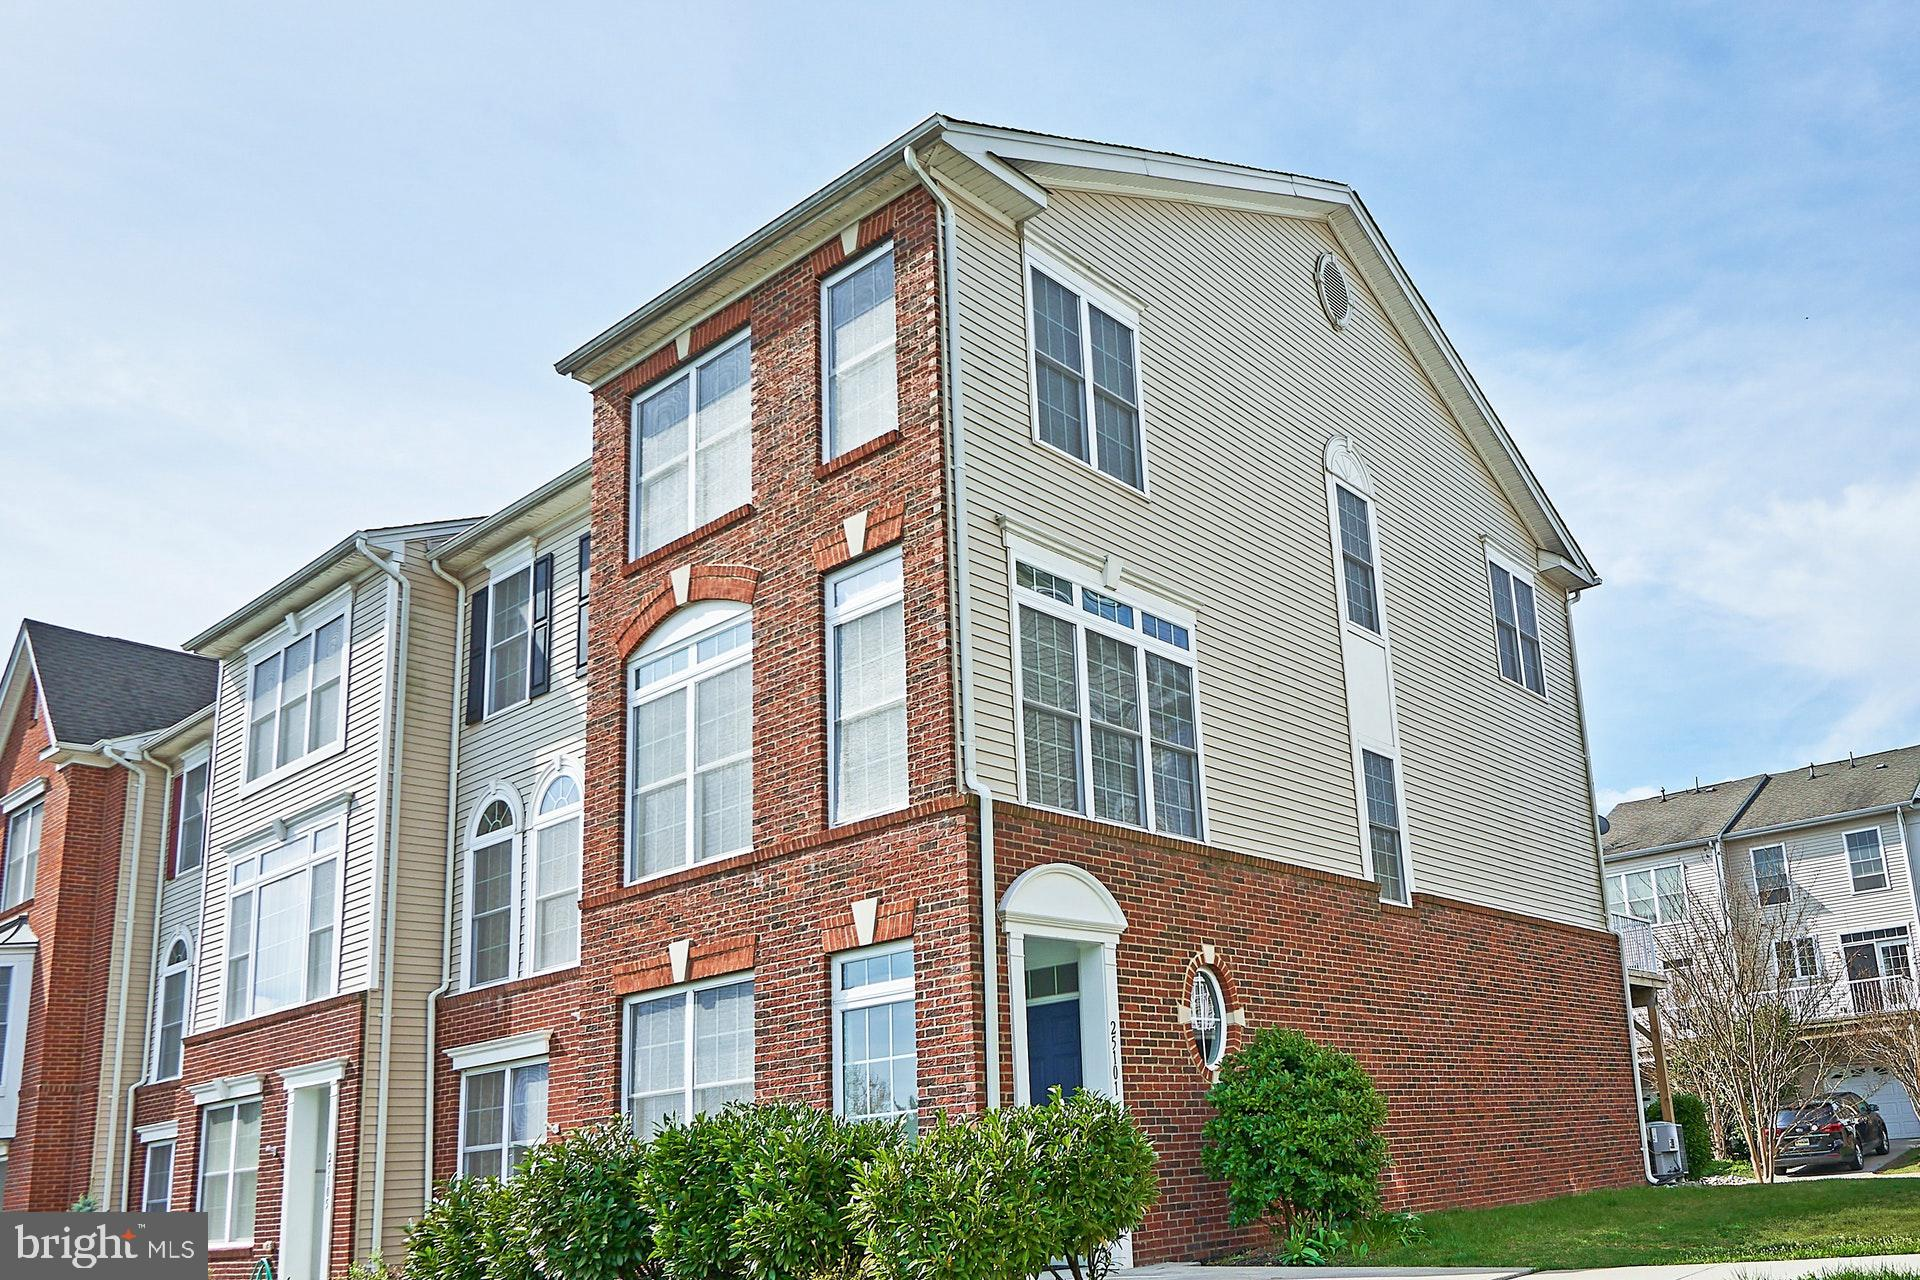 Immaculately kept 3BR, 3.5BA end-unit townhome (non-condo!) in prime location of South Riding. Hardw